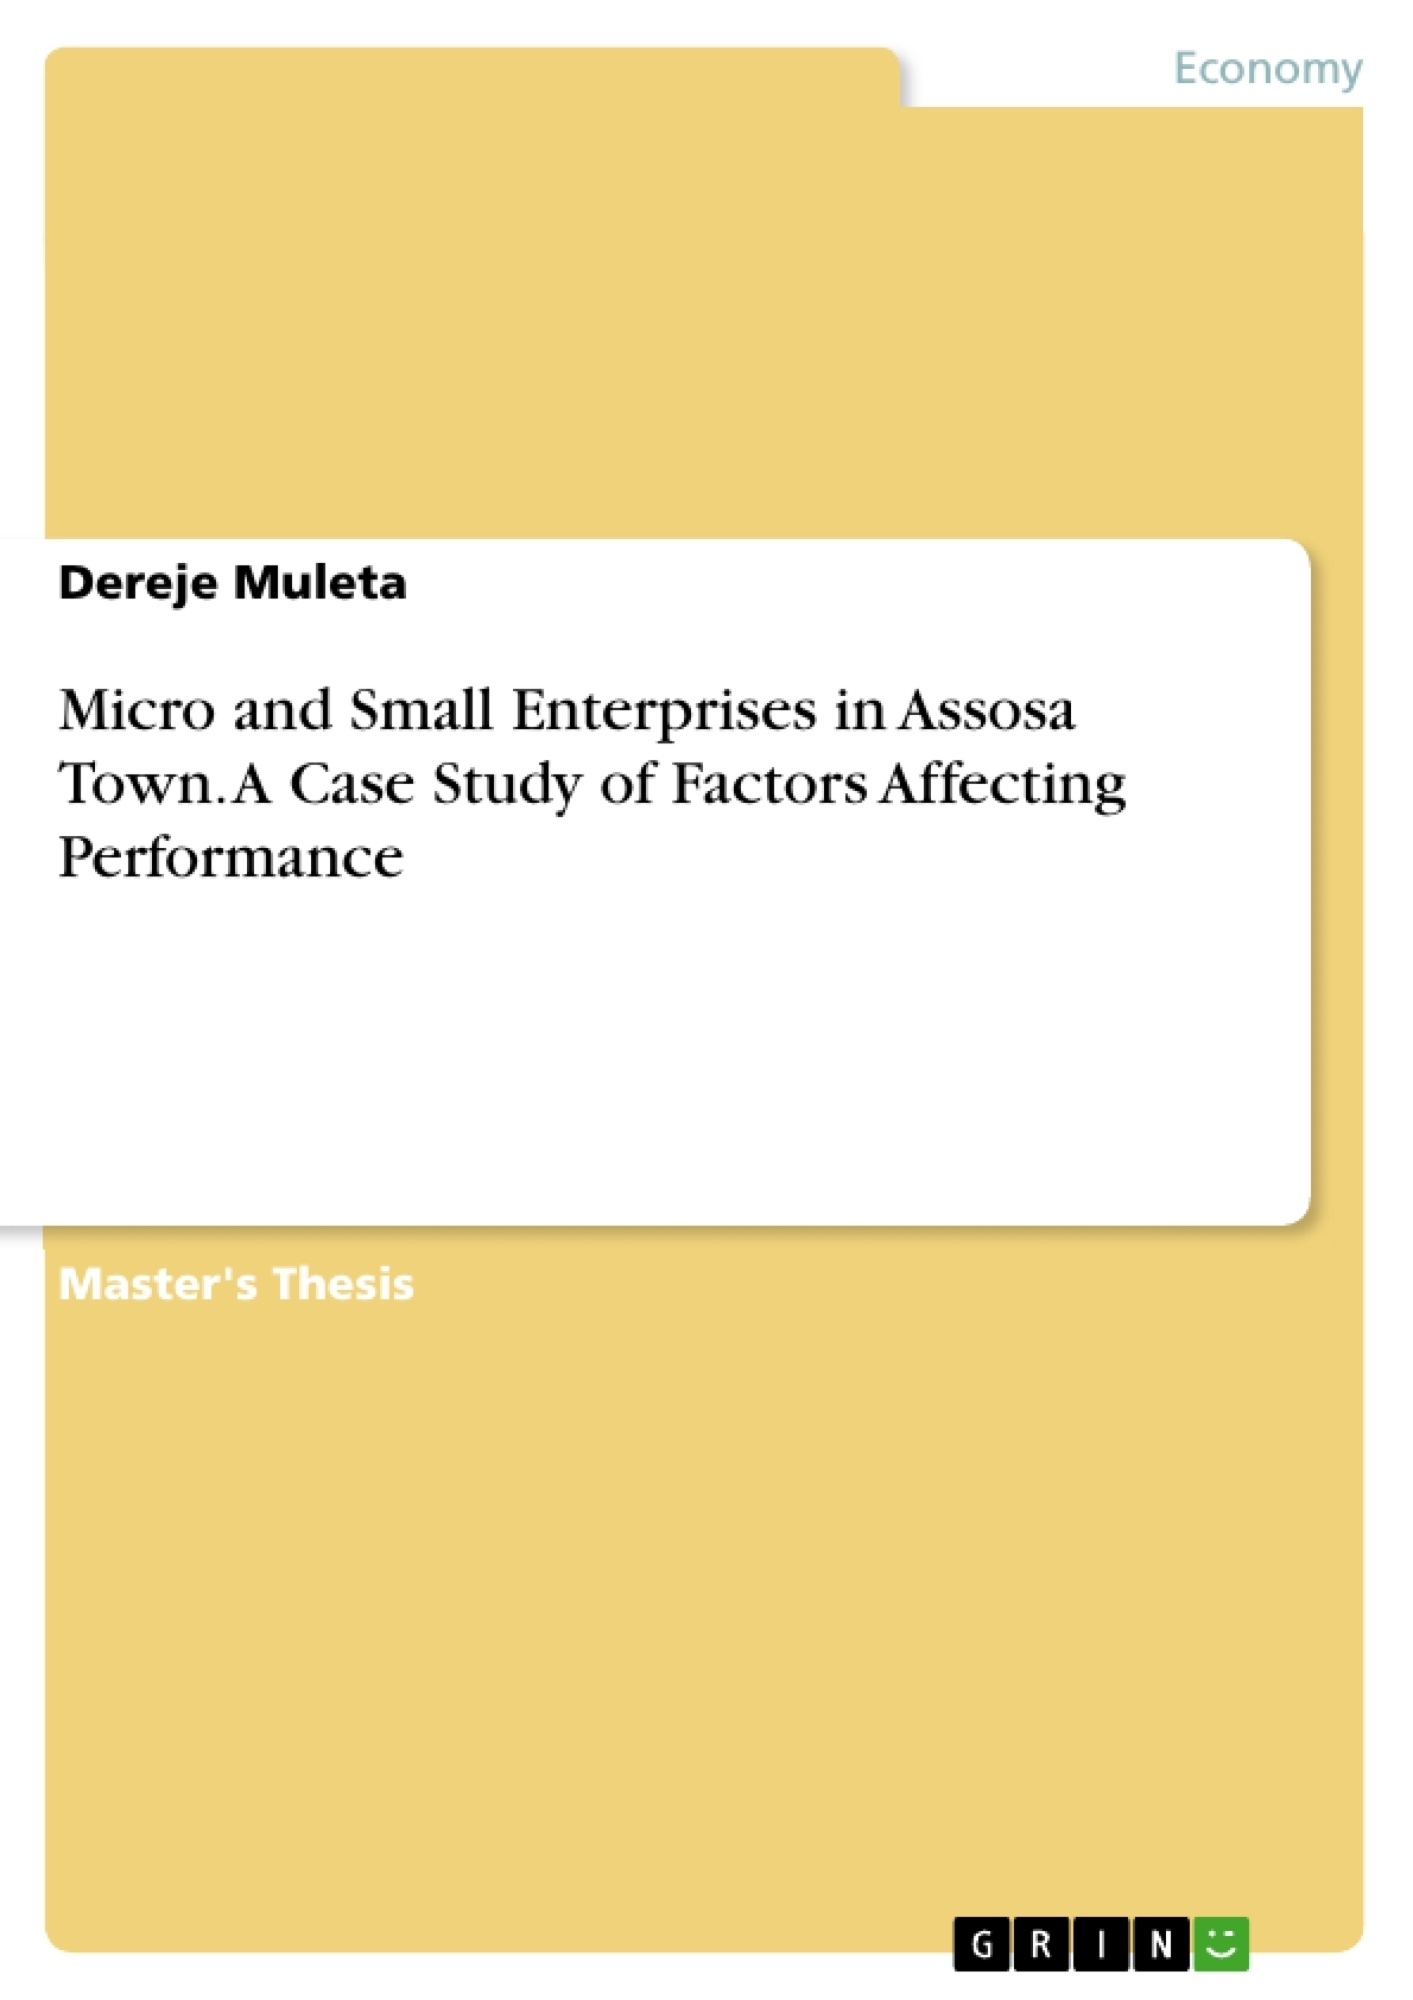 GRIN - Micro and Small Enterprises in Assosa Town  A Case Study of Factors  Affecting Performance